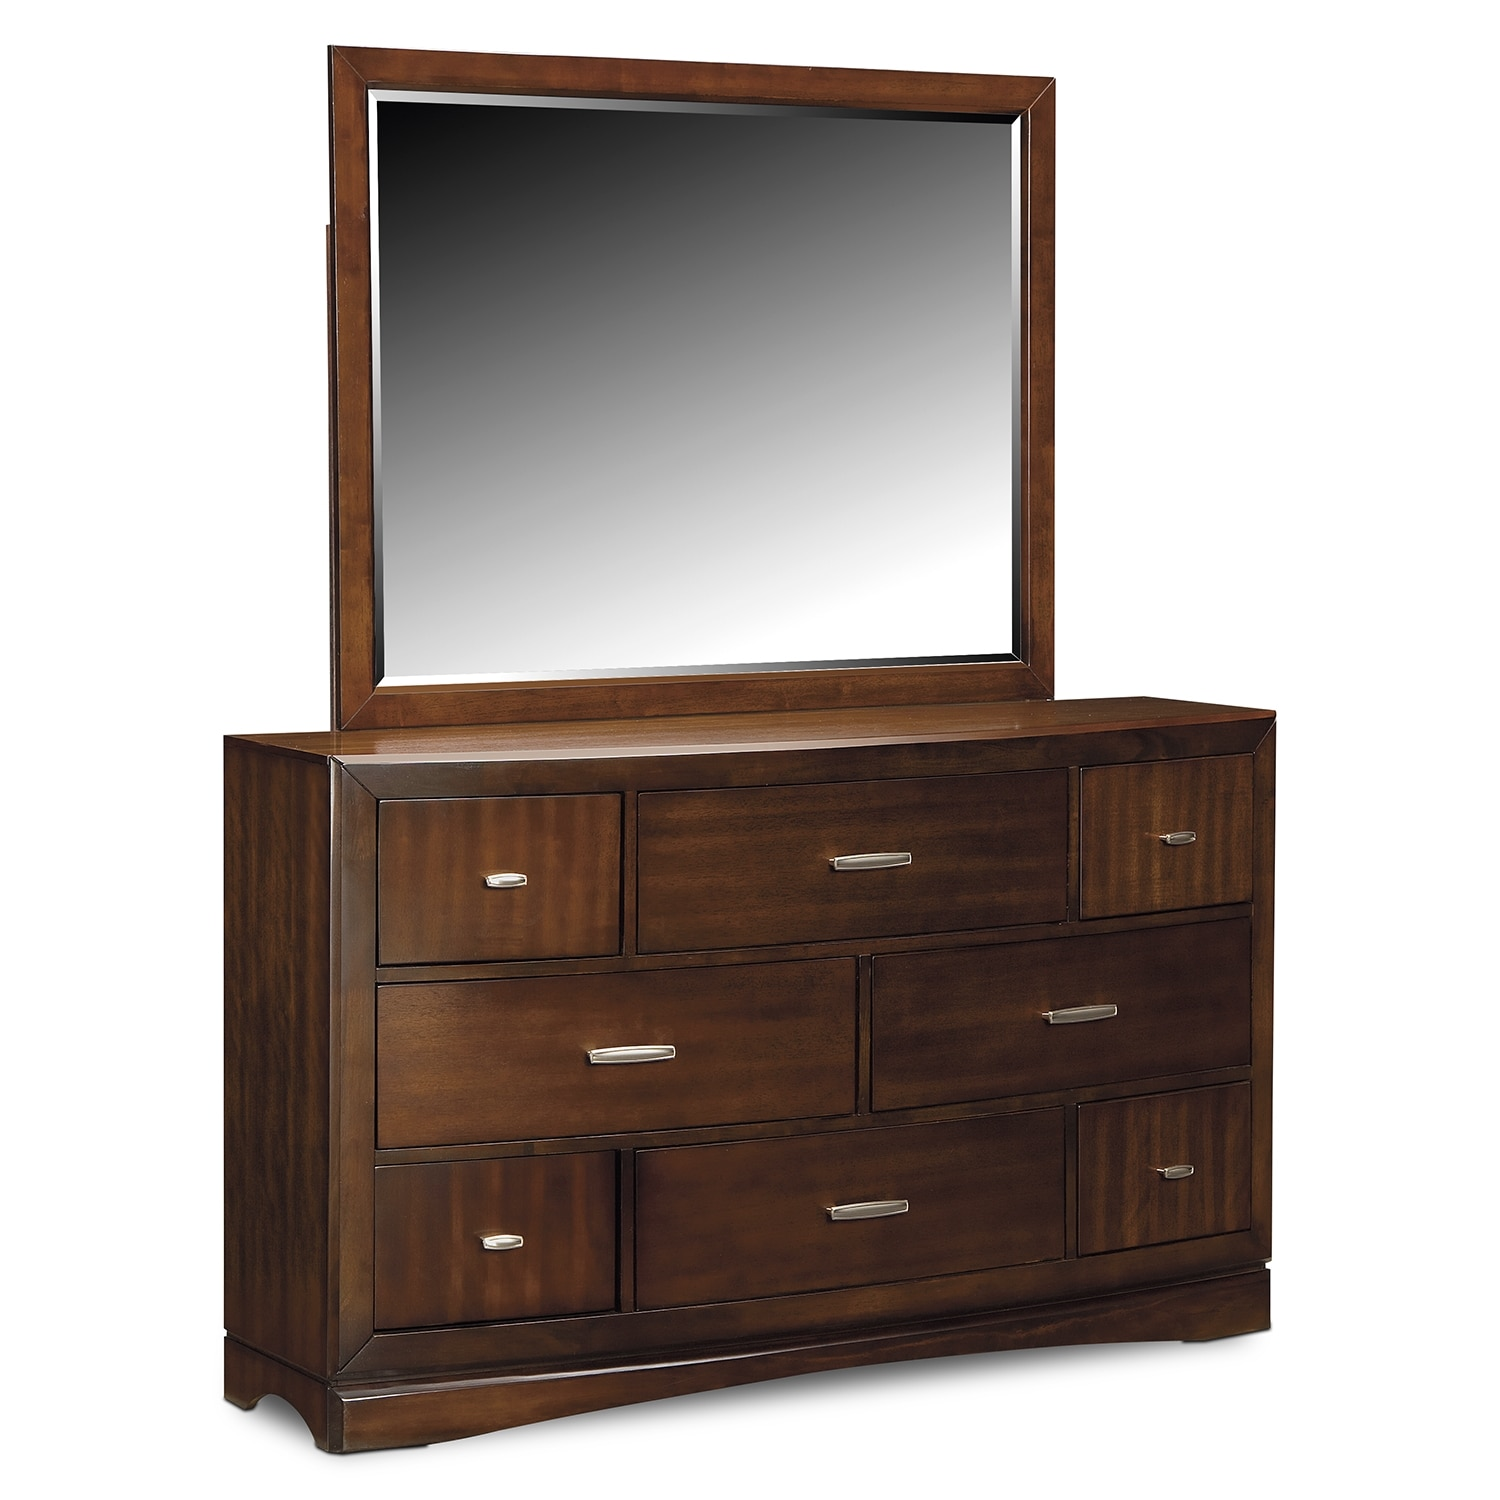 Bedroom Furniture - Toronto Dresser & Mirror